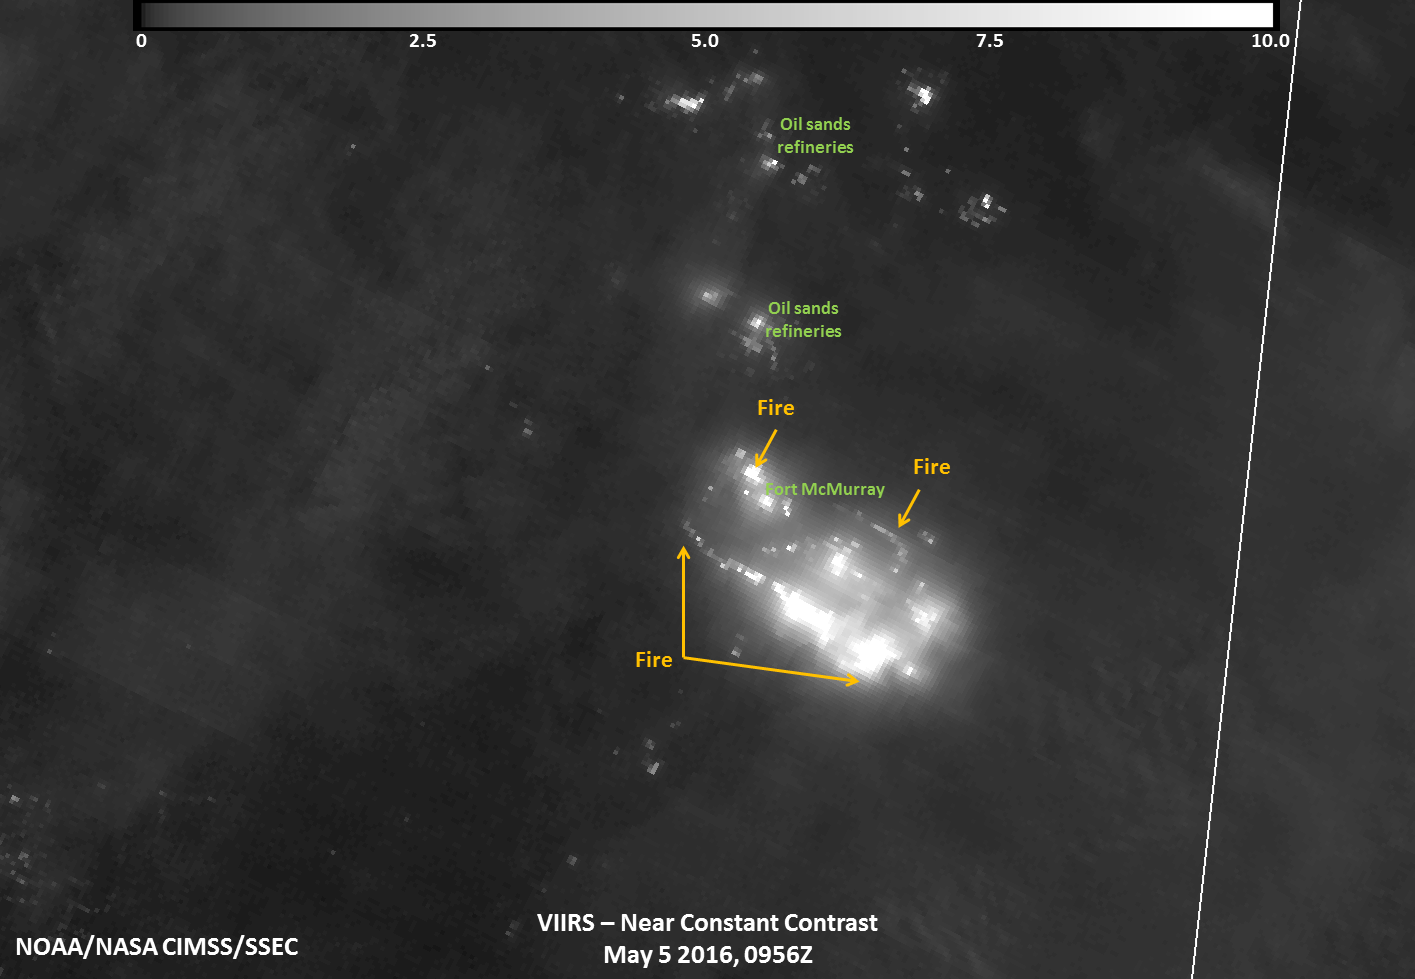 Suomi NPP NCC Image Of Ft McMurray Fire